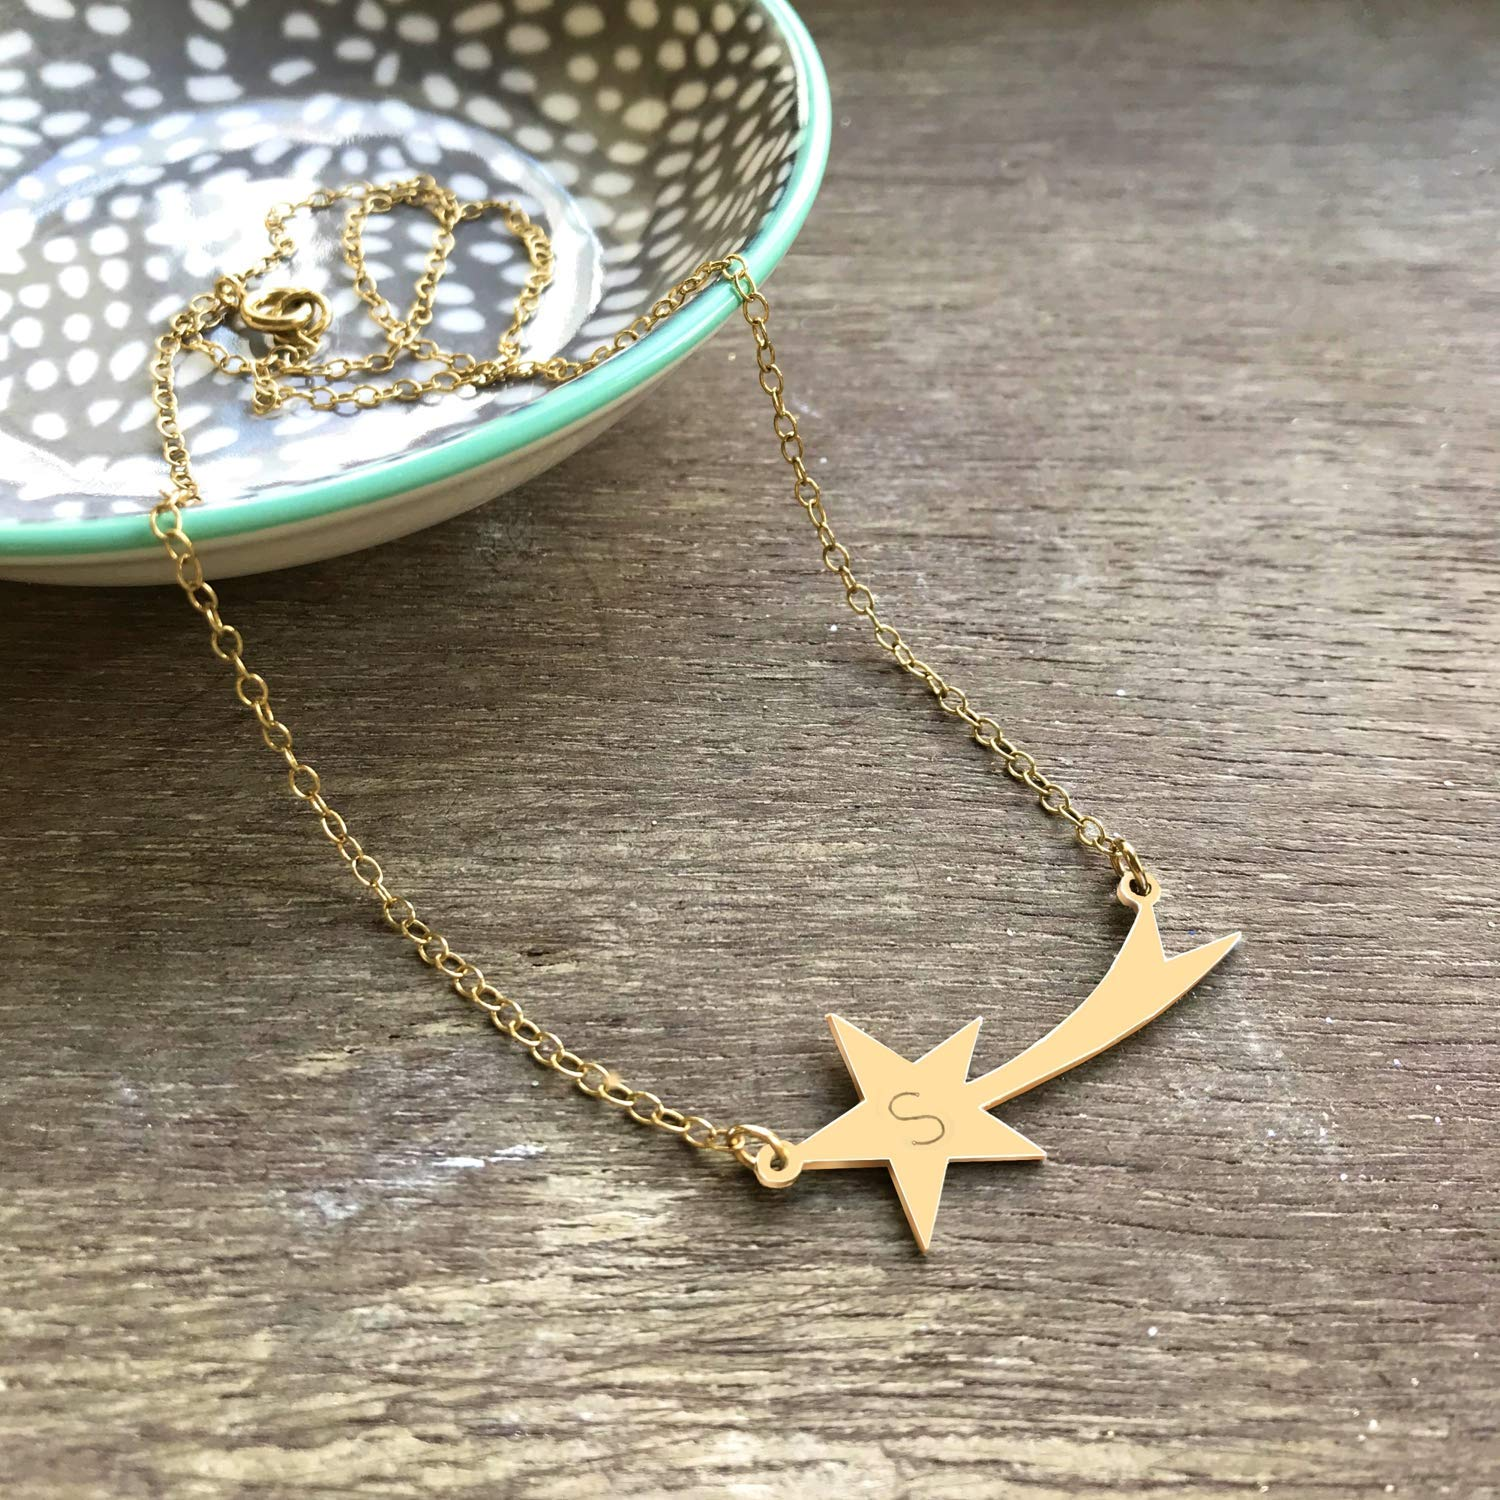 star necklace Personalised Sterling Gold Shooting Star Necklace celestial jewellery birthday gift shooting star necklace anniversary gift